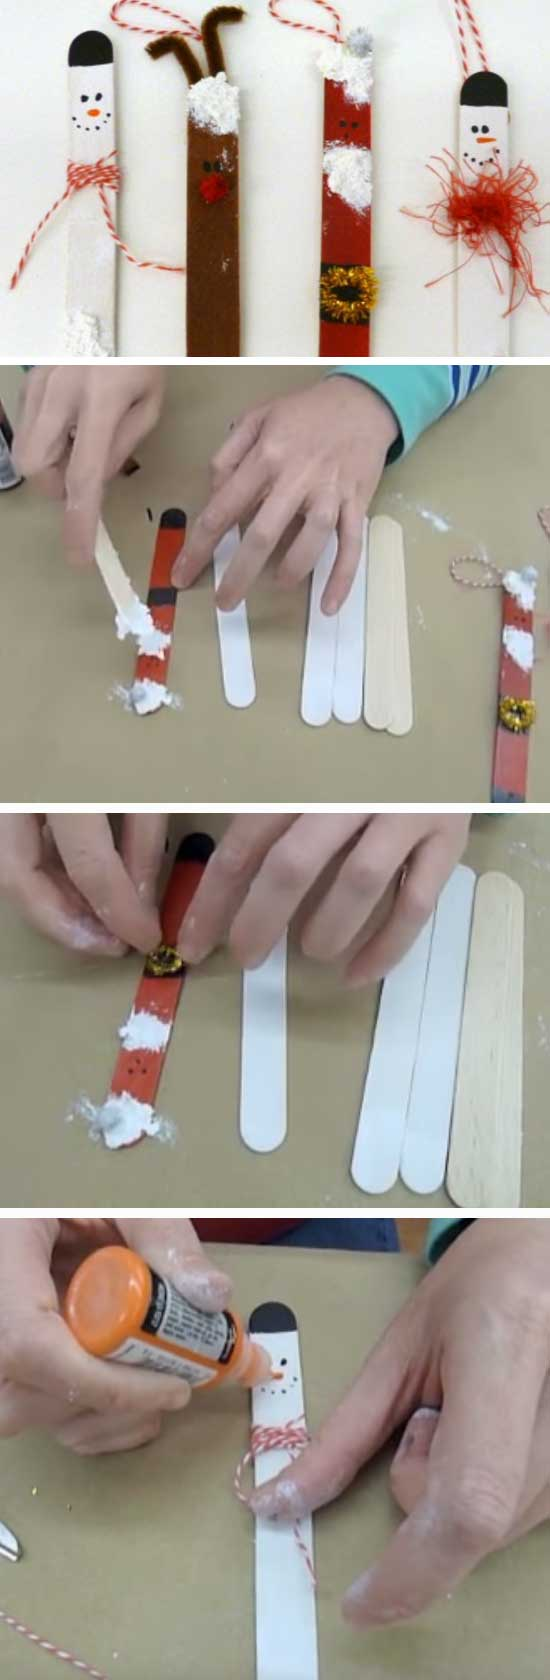 23 DIY Ideas and Tutorials to Recycle Popsicle Sticks for Christmas